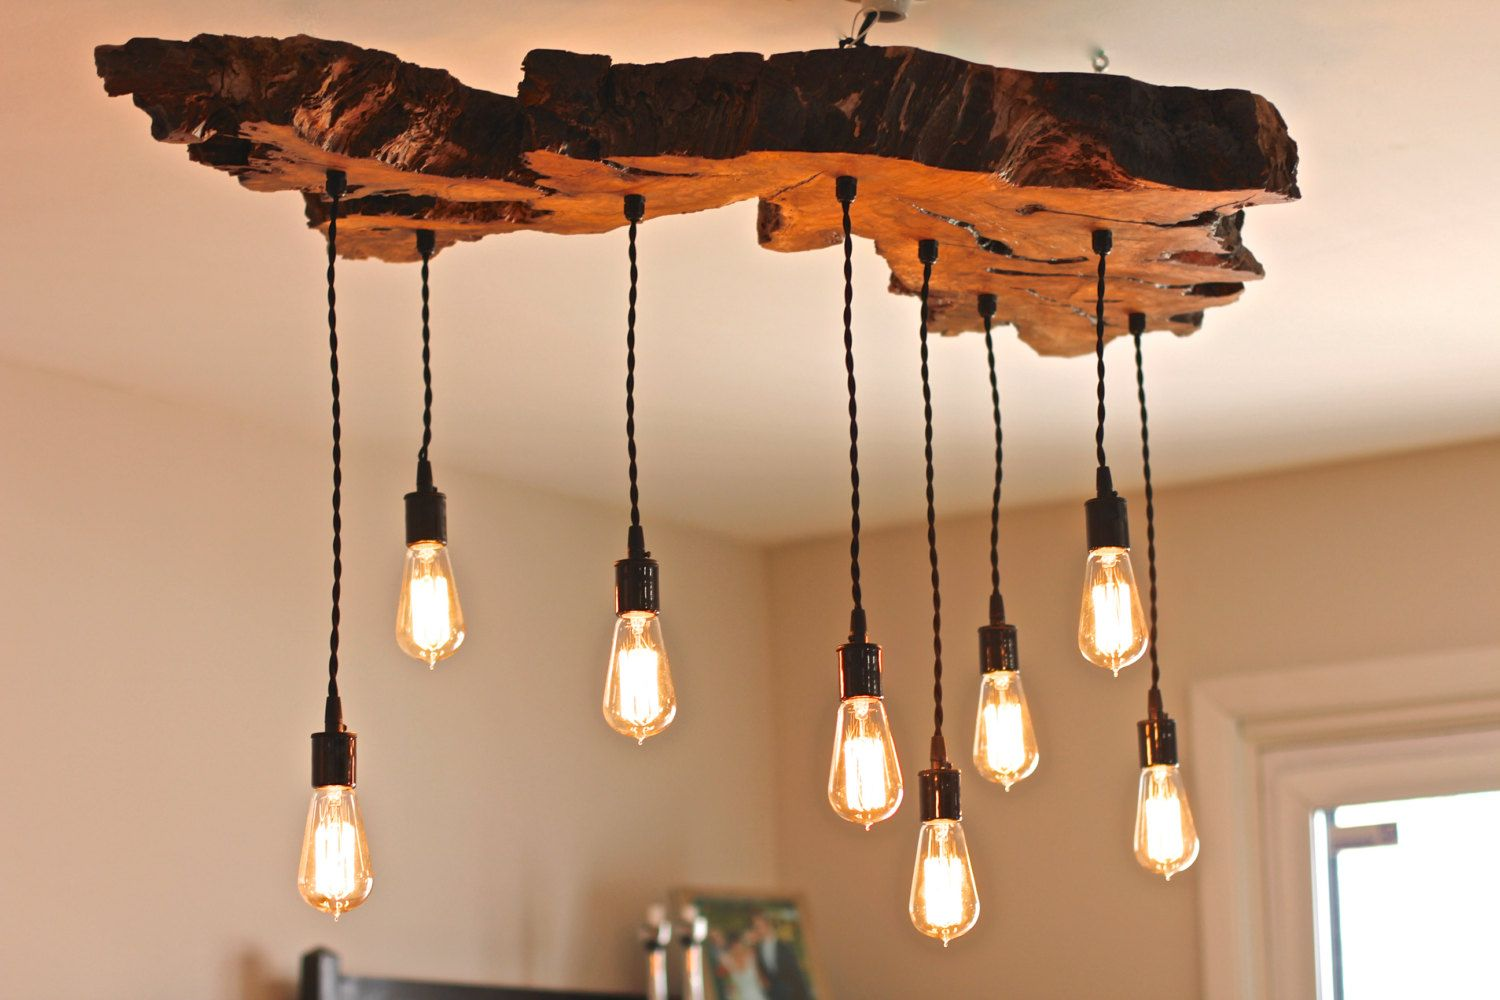 Esszimmer Lampe Treibholz Olive Wood Live Edge Light Fixture Earthy Rustic